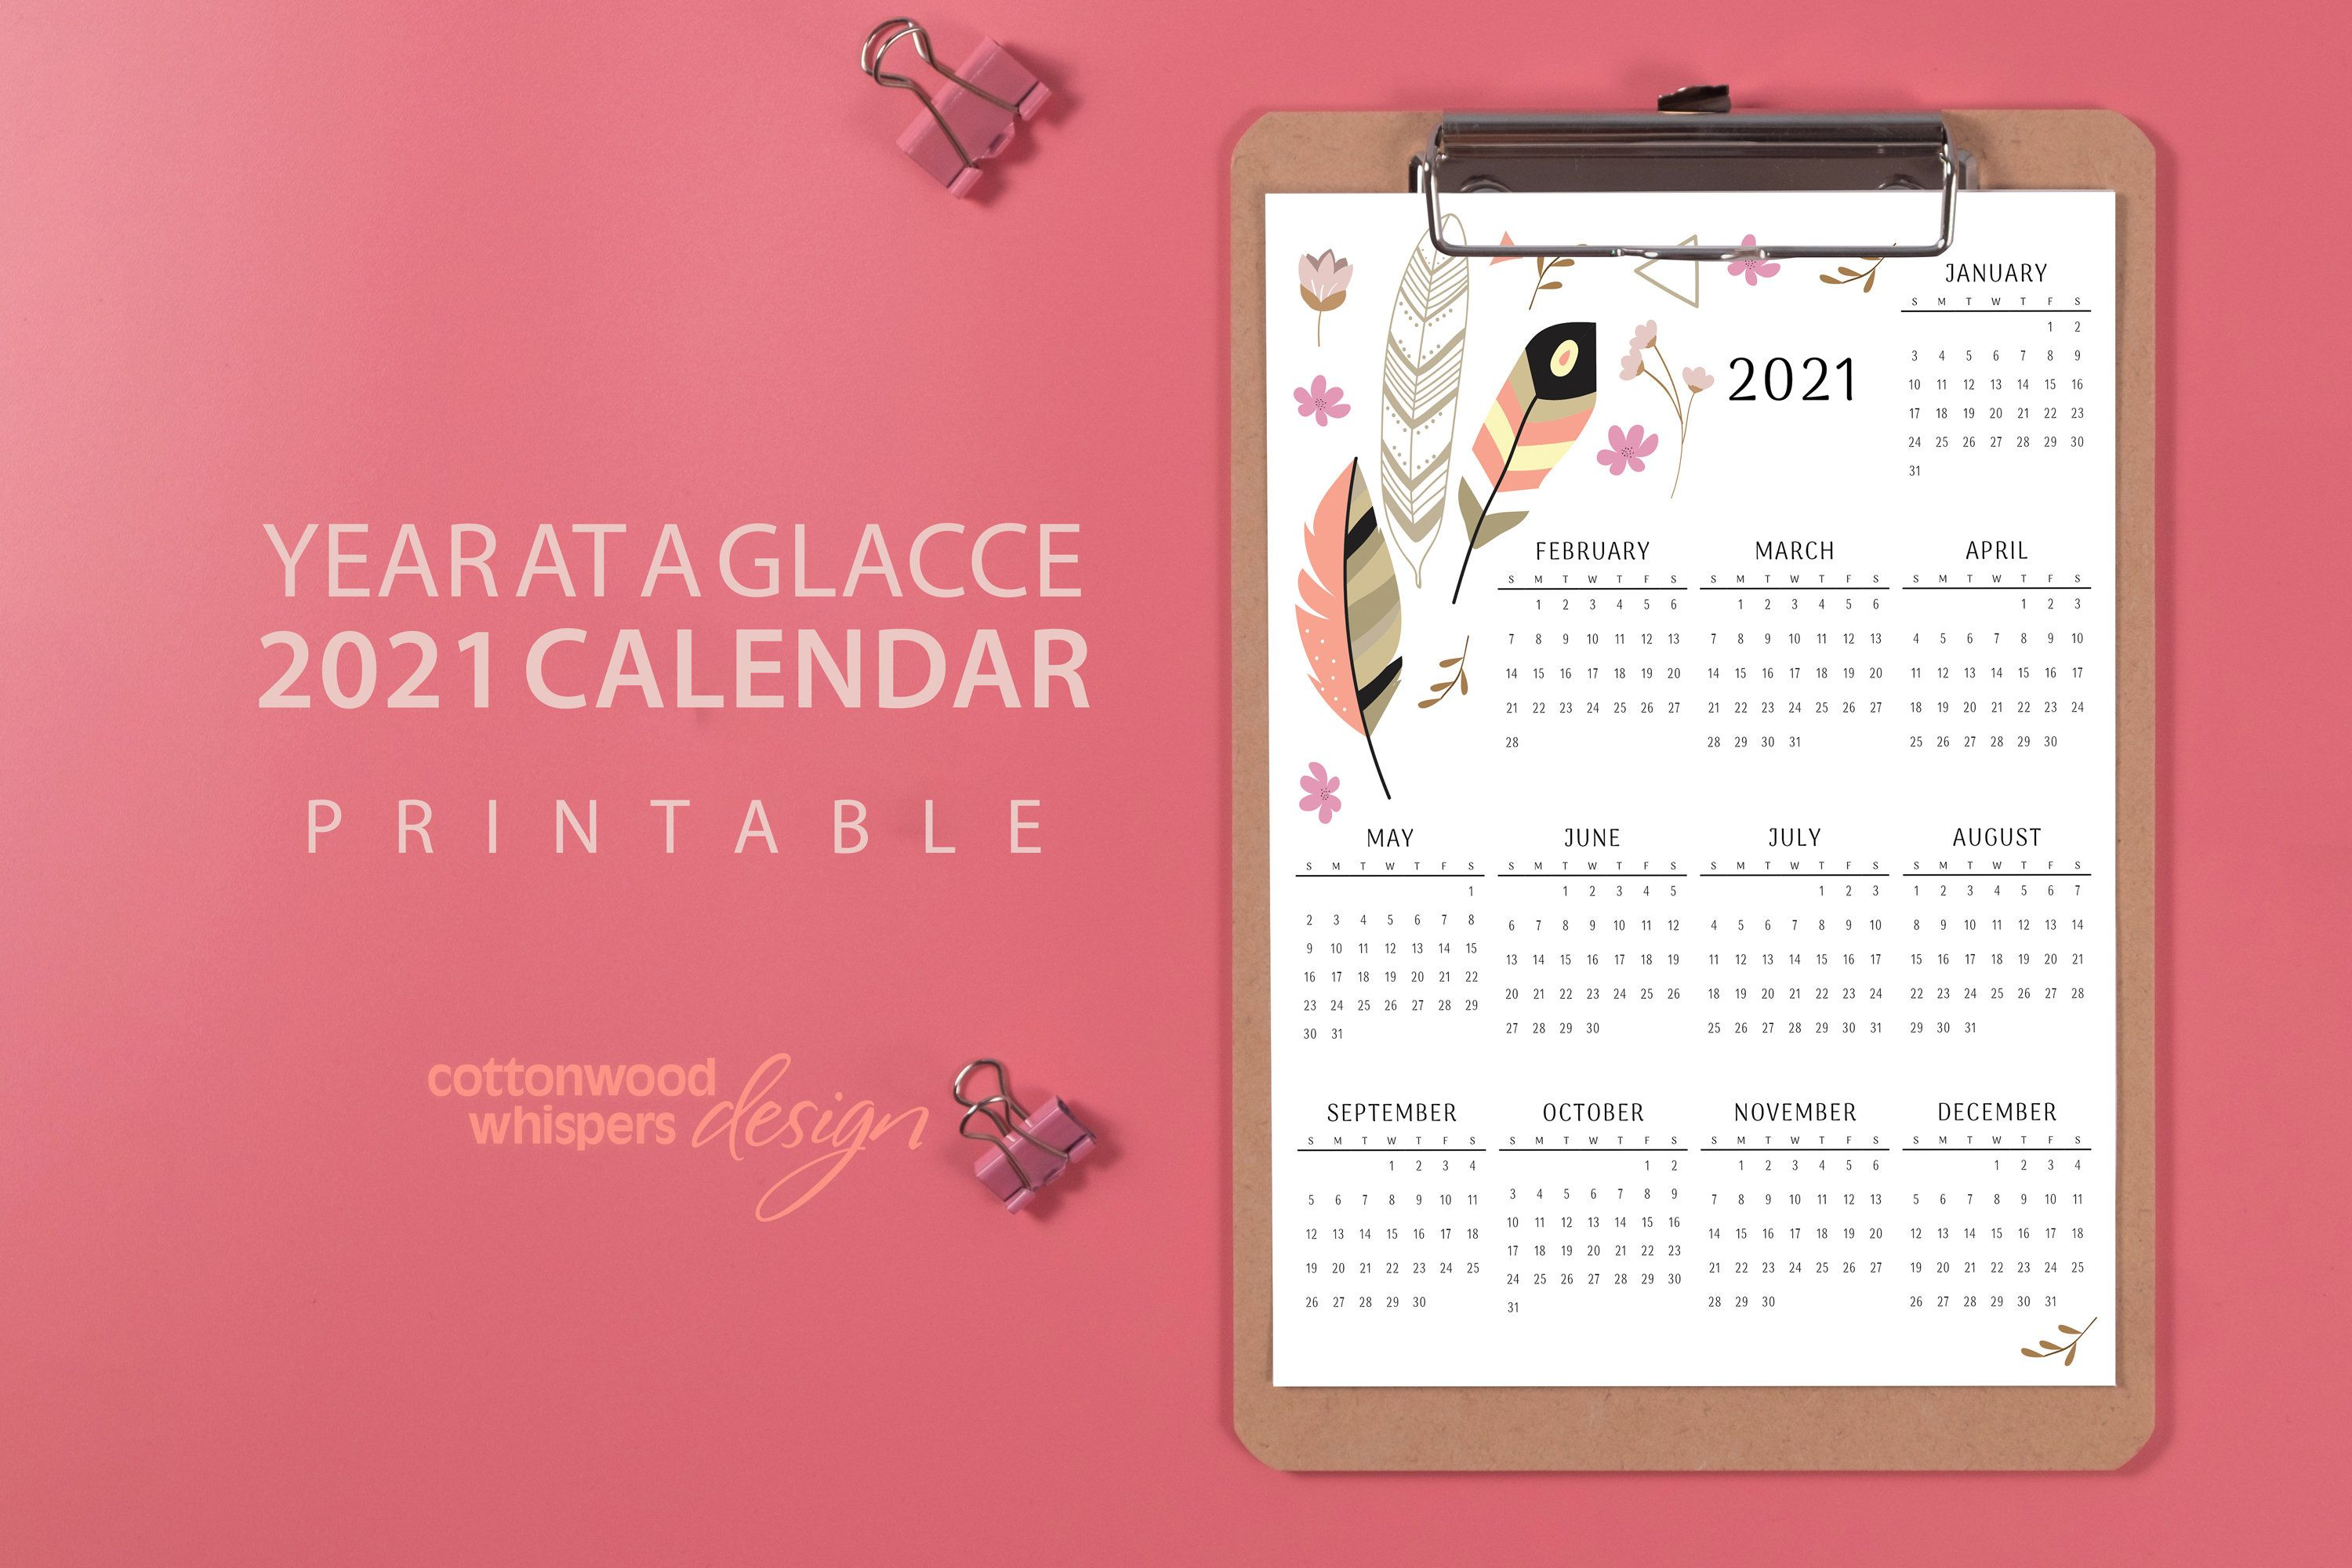 12x18 PDF 2021 Calendar download DIY 12 months wall poster Year at a Glance Yearly Planner